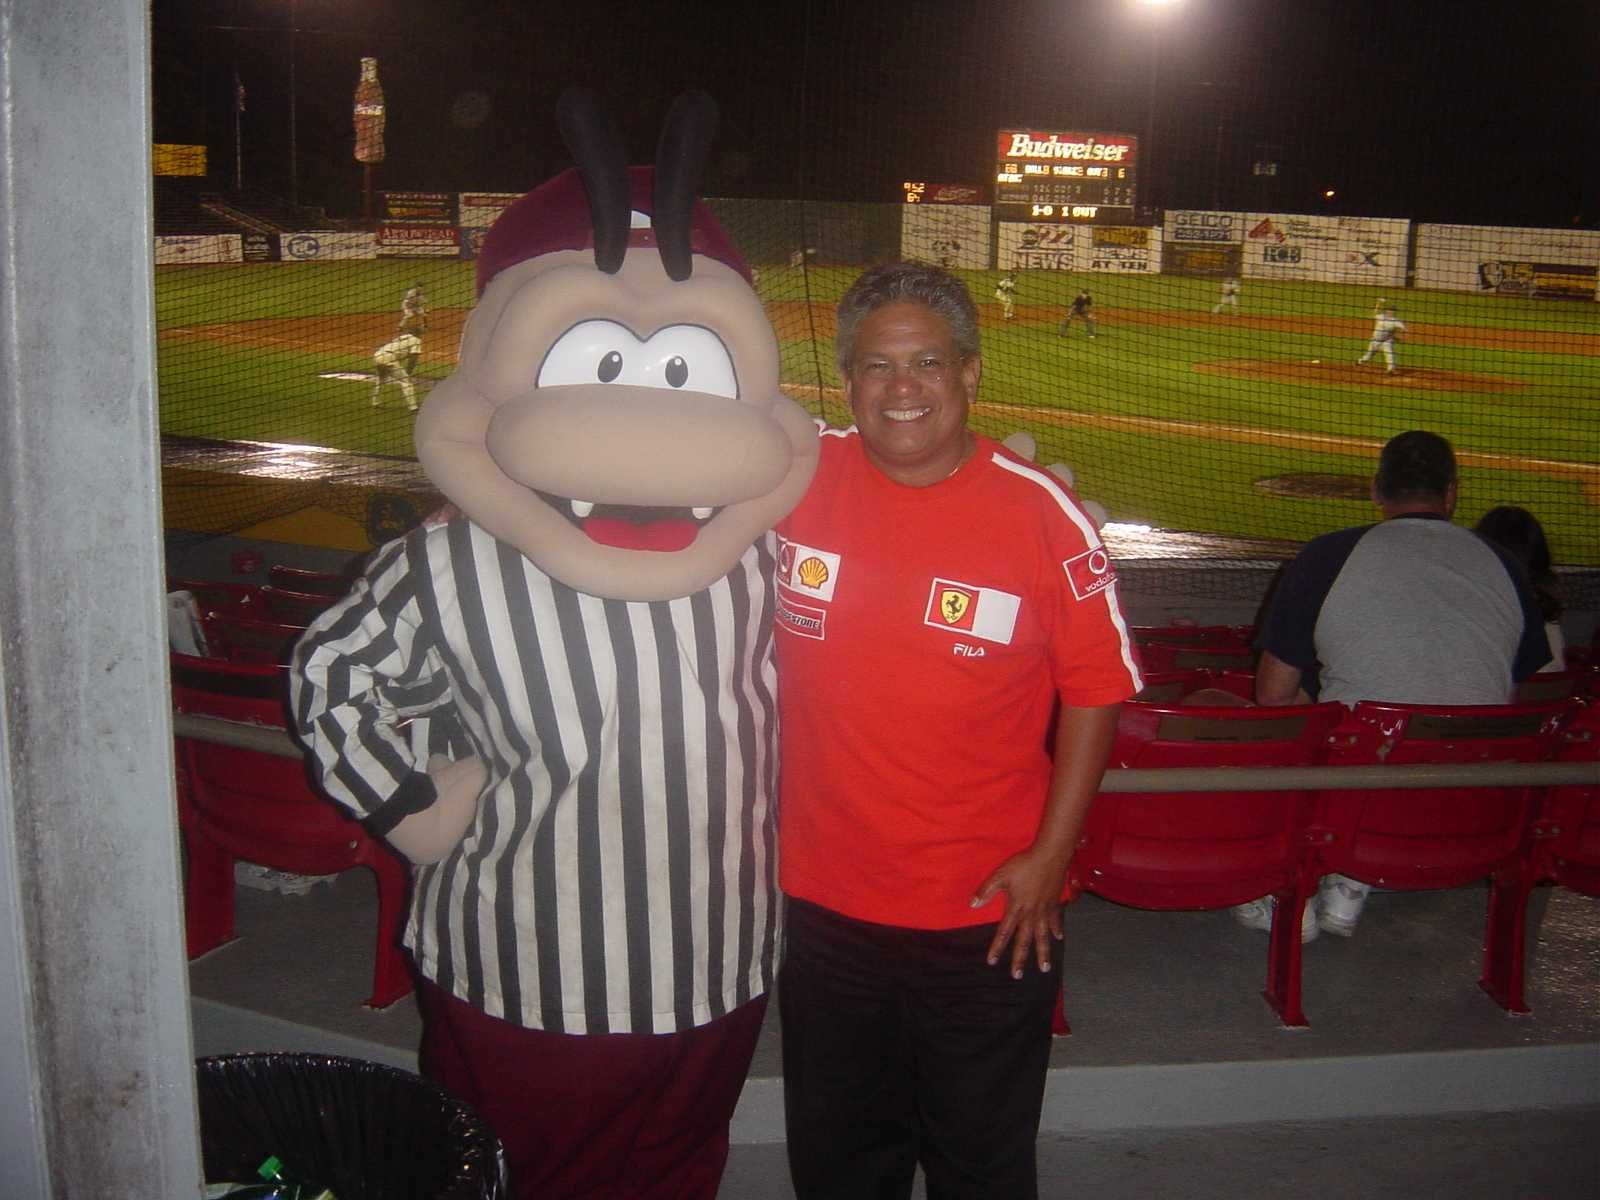 Mr. Savannah Sand Gnat! An awesome place to watch minor league baseball where every seat in Grayson Stadium is in the front row!